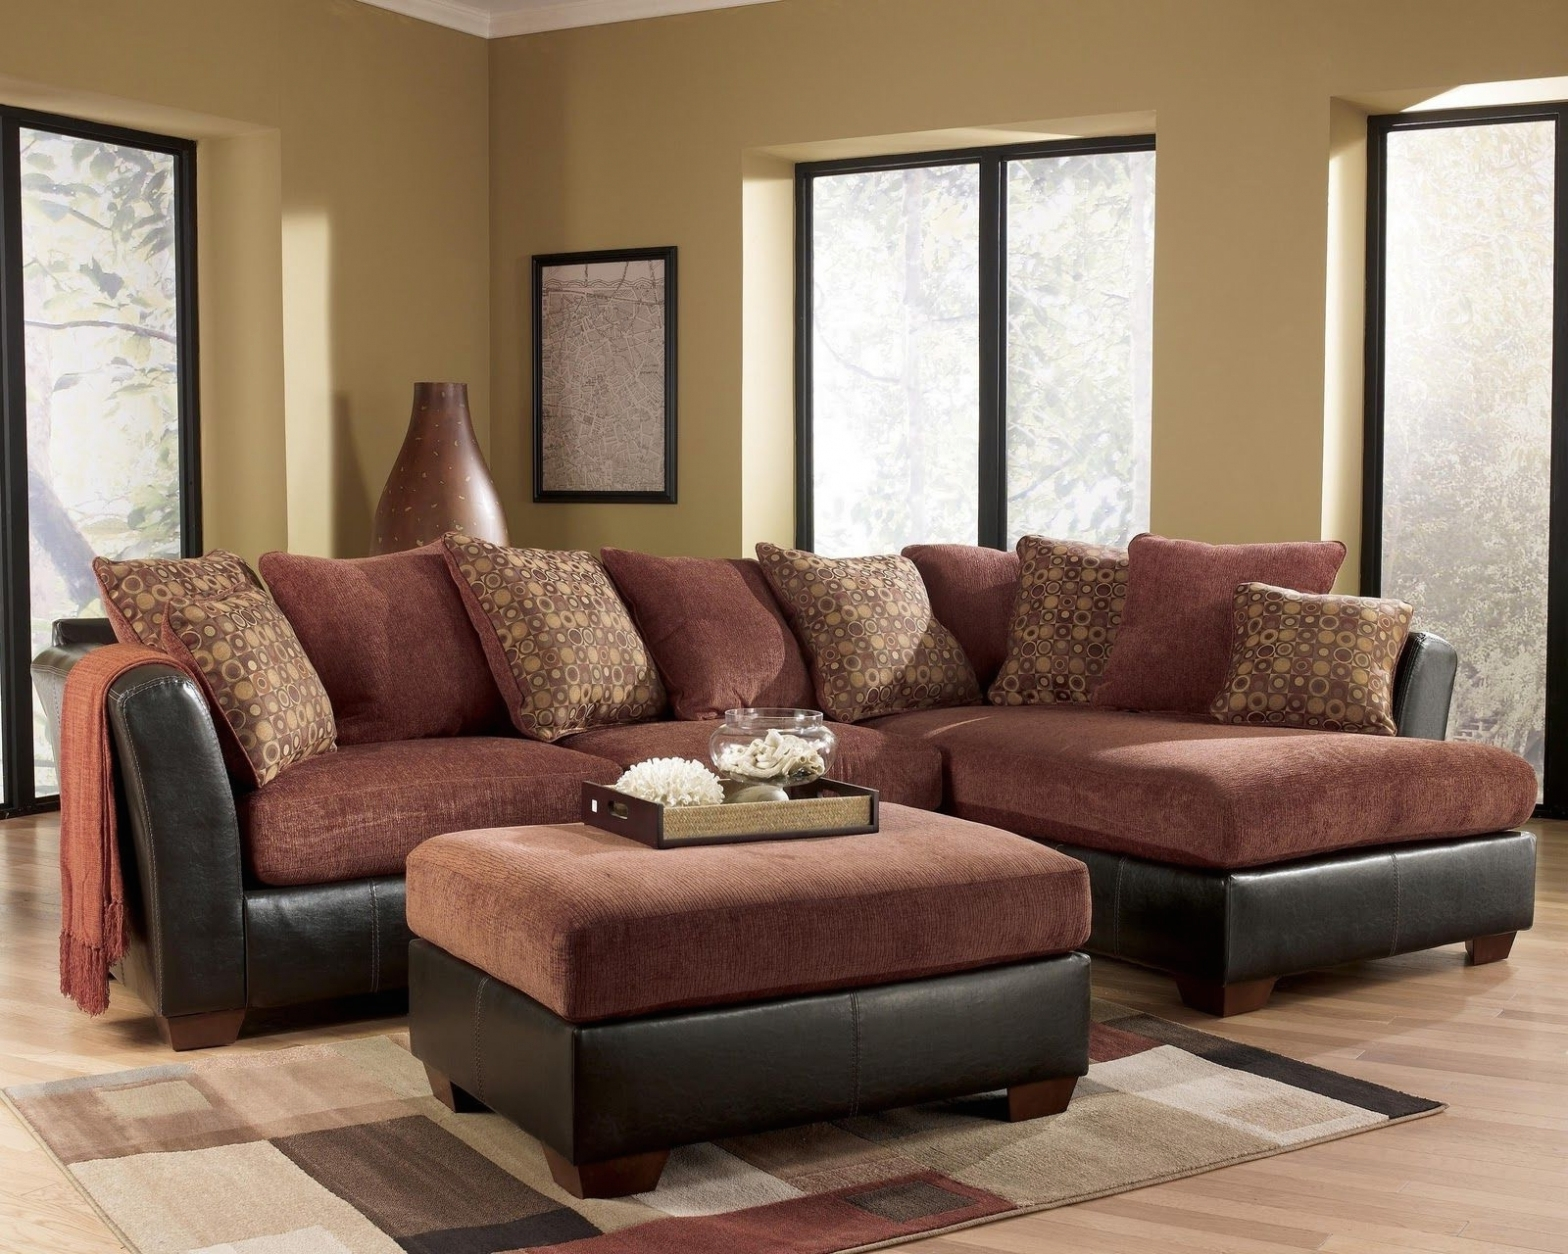 Most Popular Sofa: Furniture : Amazing Jc Penneys Furniture Beautiful Jcpenney Throughout Jcpenney Sectional Sofas (View 9 of 20)